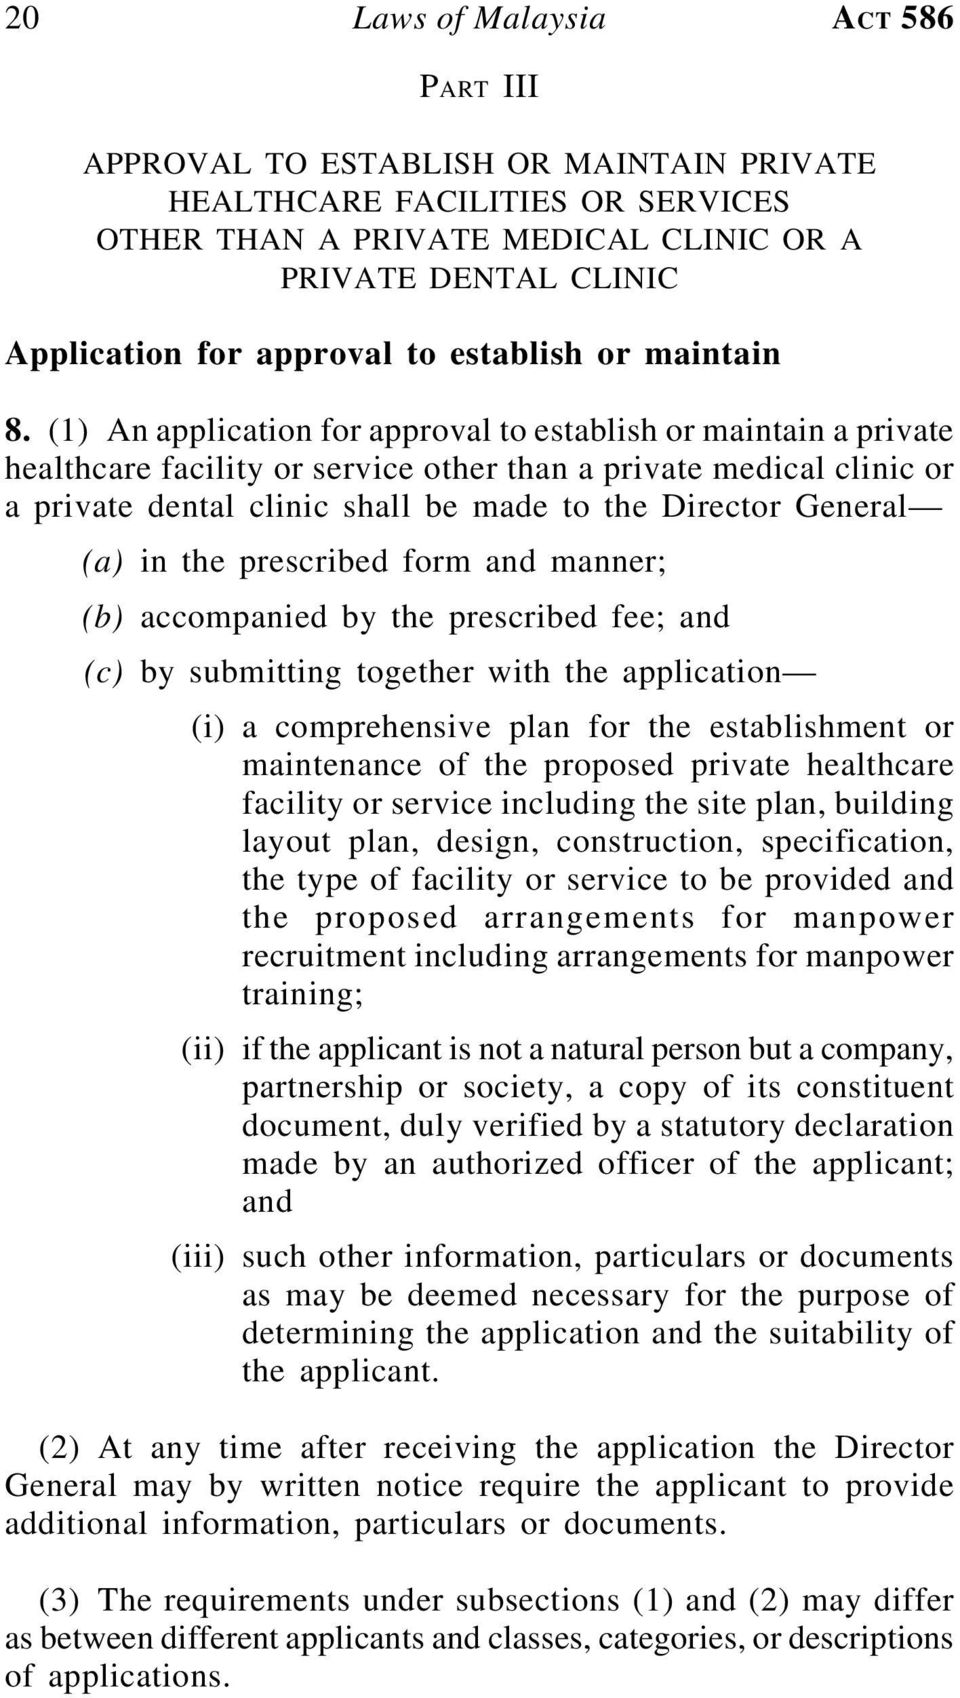 (1) An application for approval to establish or maintain a private healthcare facility or service other than a private medical clinic or a private dental clinic shall be made to the Director General